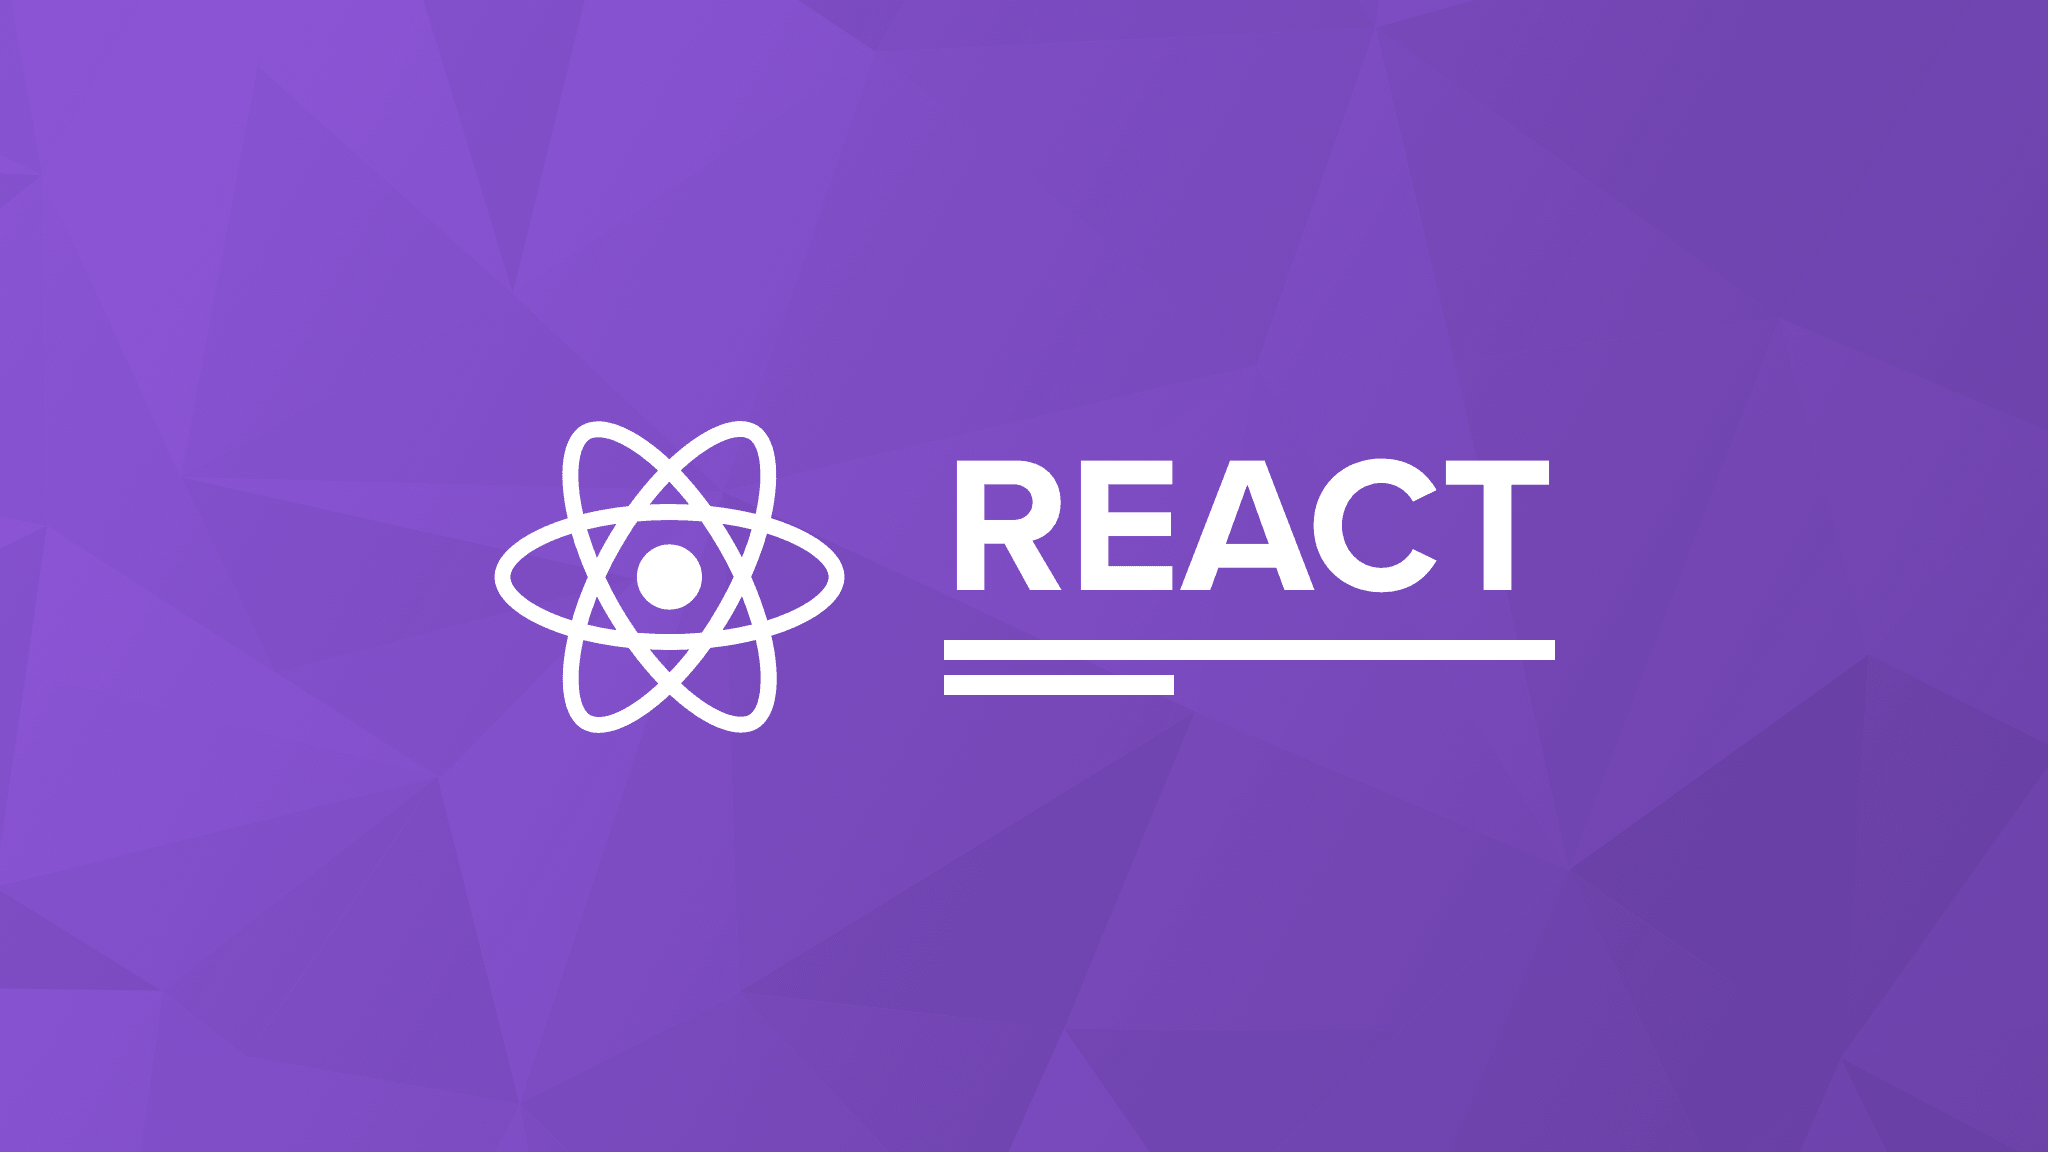 The Complete React Developer Course (2nd Edition)